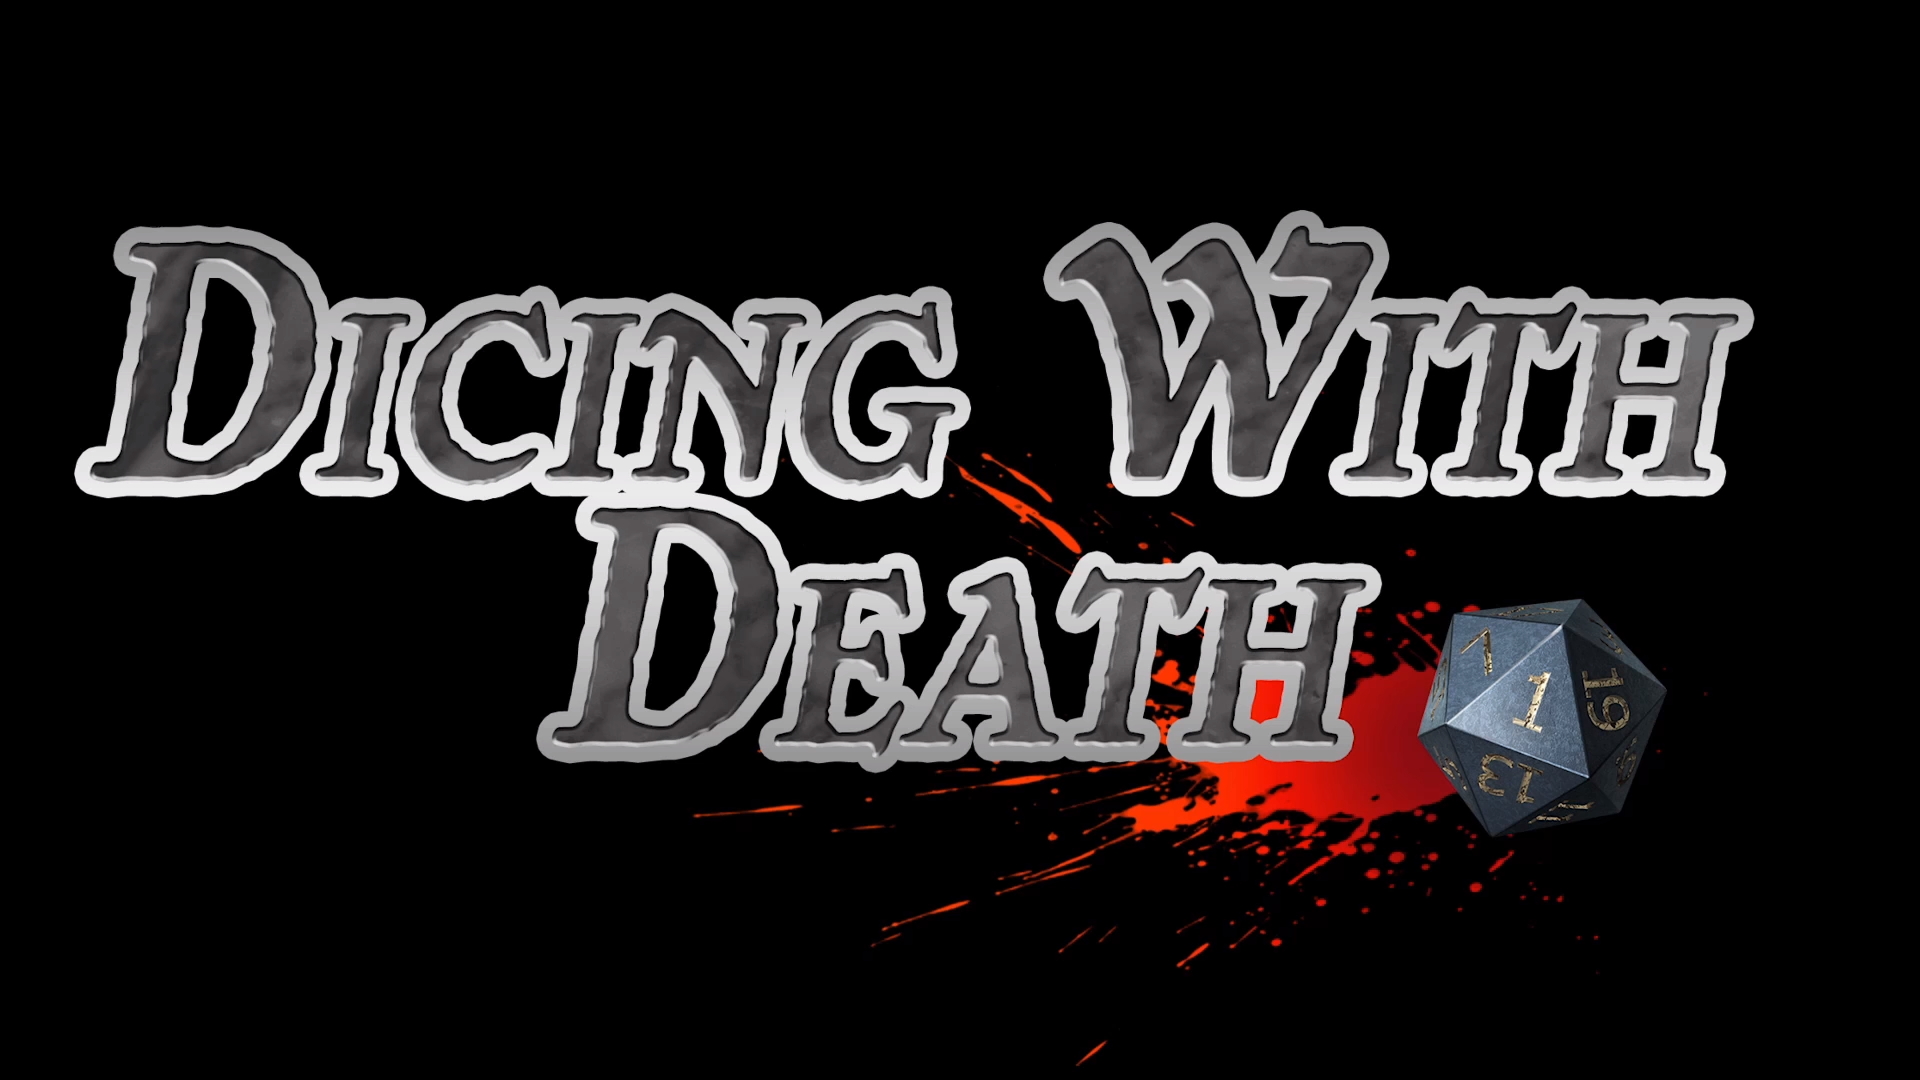 DicingWithDeath